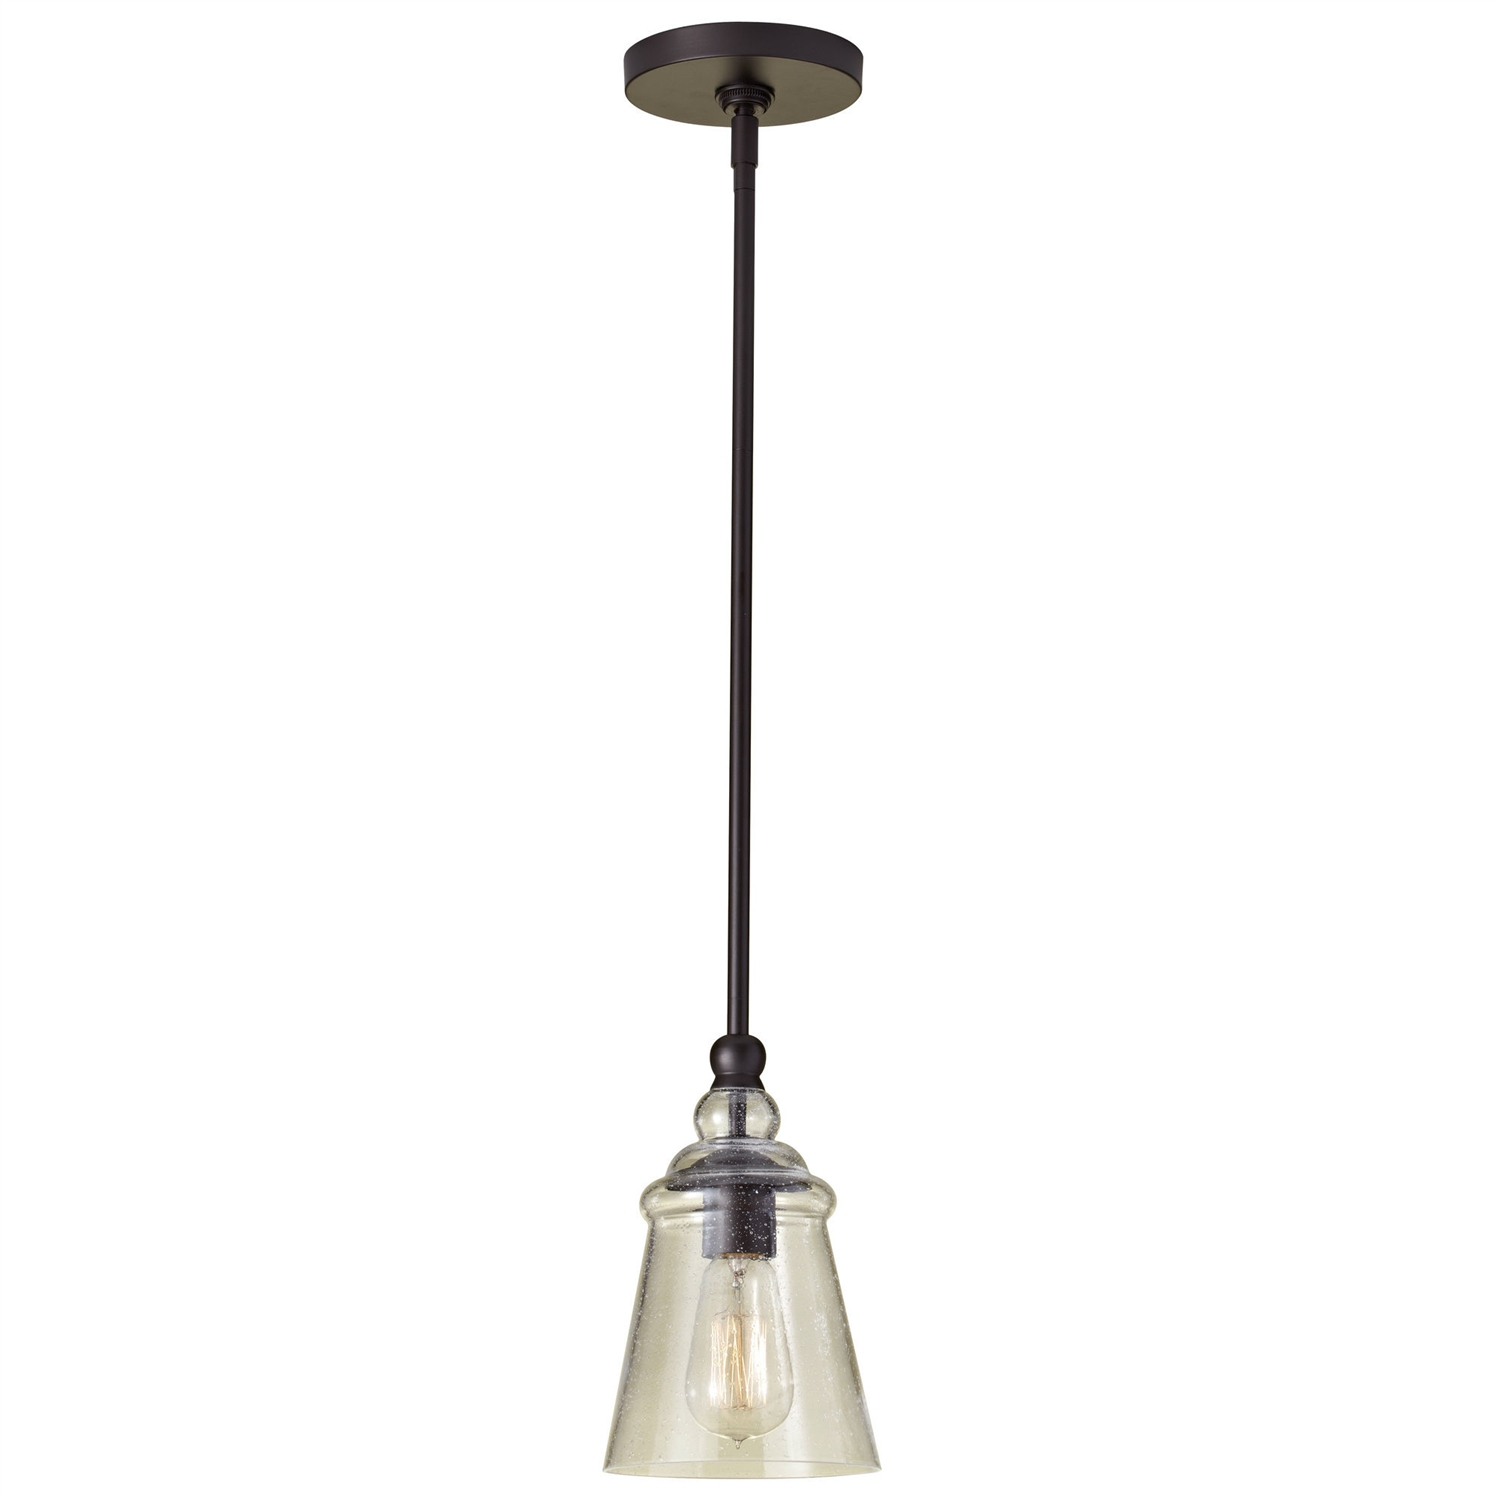 This Contemporary 1-Light Ceiling Pendant in Rubbed Bronze Finish would be a great addition to your home. It has a oil rubbed bronze finish and is a mini pendant fixture type. Swarovski Crystal: No; Lens Included: No; Swag Light: No; Bulb Included: No; Adjustable: Yes; Product Care: Wipe clean with a damp cloth;  Country of Manufacture: China; Assembly Required: Yes; Product Warranty: 1 Year.